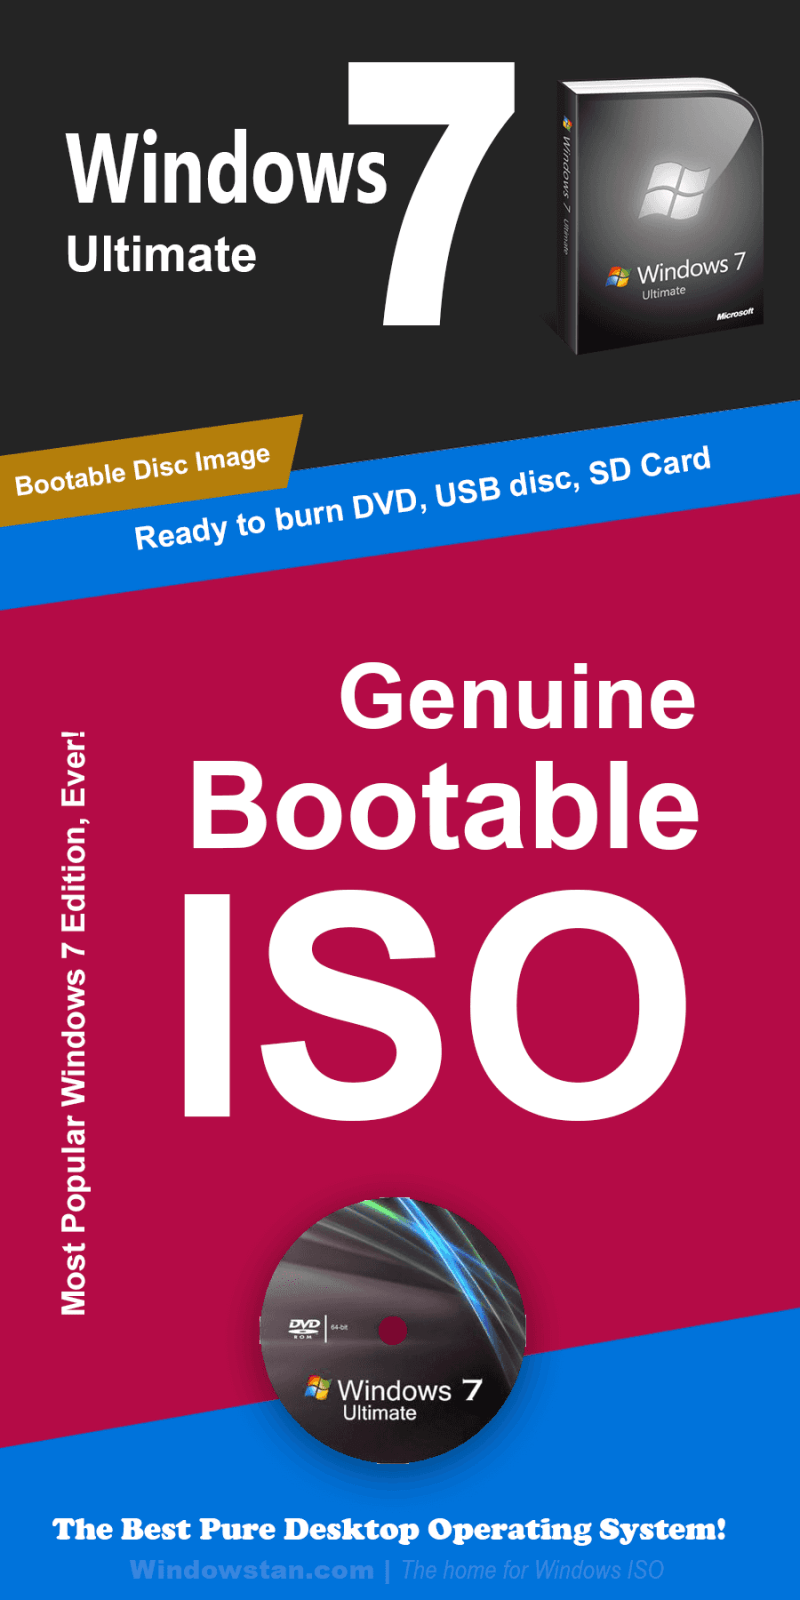 Infographic - Windows 7 Ultimate ISO - Windowstan